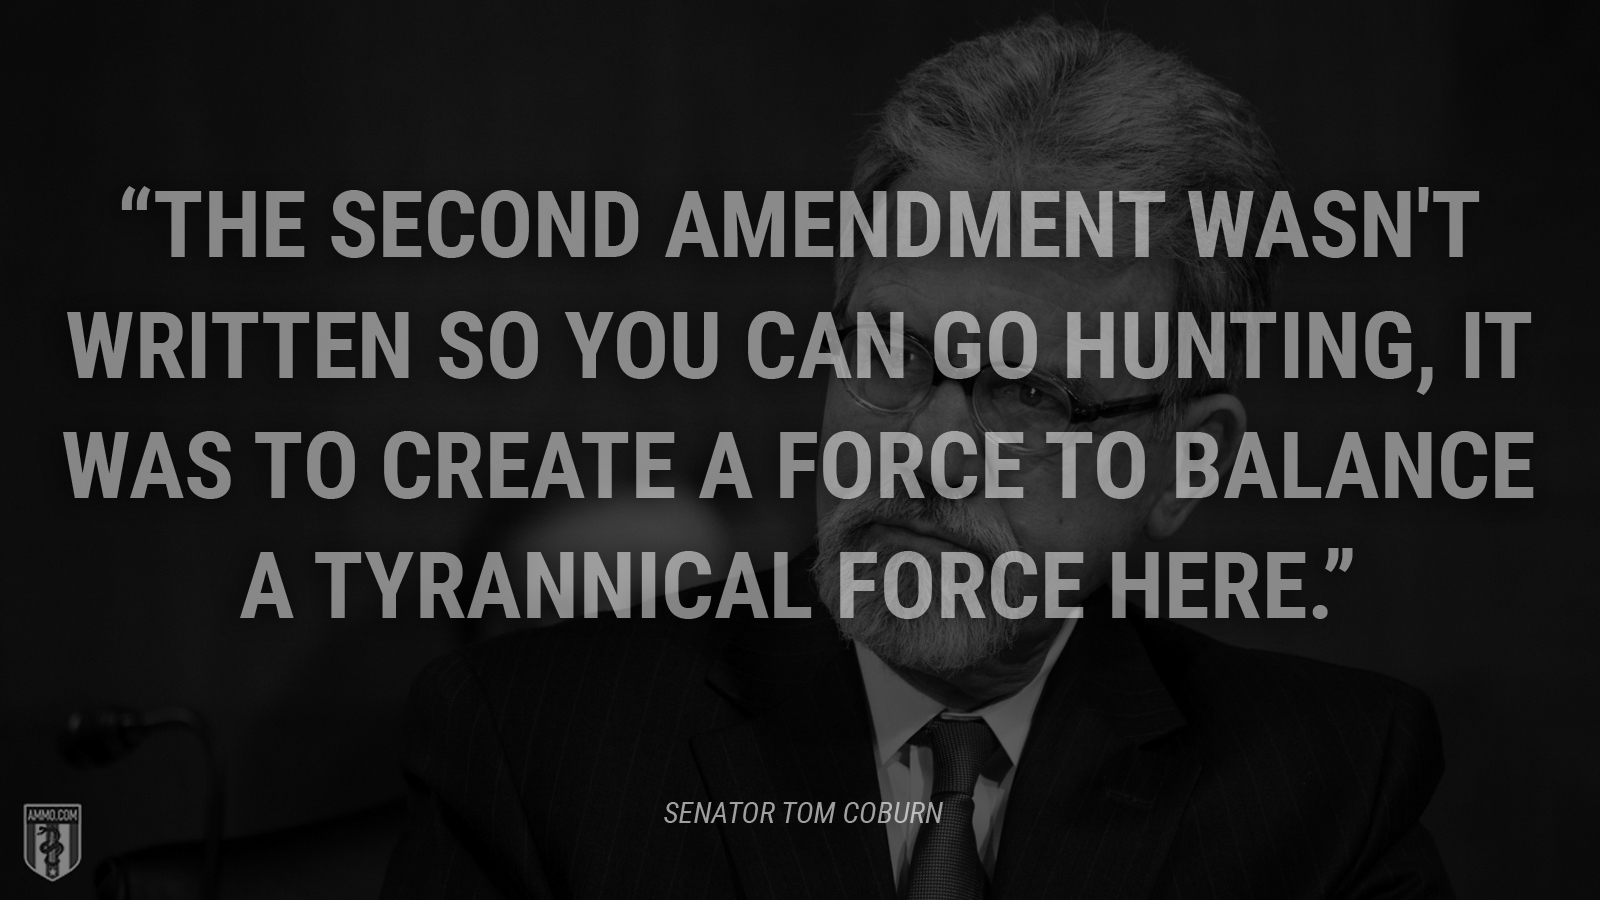 """The Second Amendment wasn't written so you can go hunting, it was to create a force to balance a tyrannical force here."" - Tom Coburn"